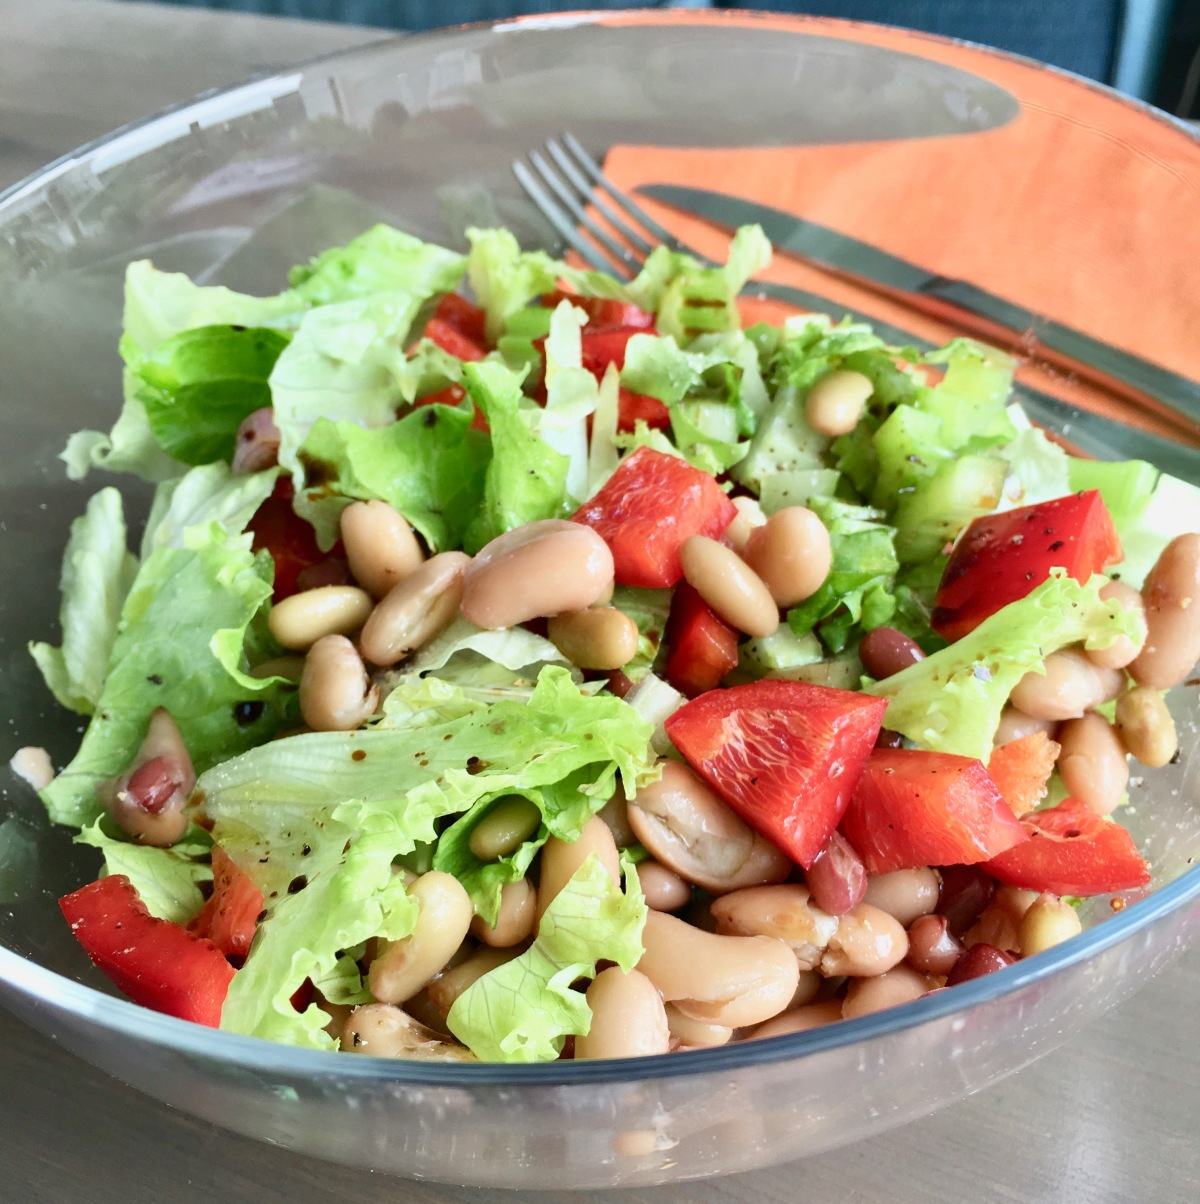 PopsicleSociety_Salad with beans1 - 1